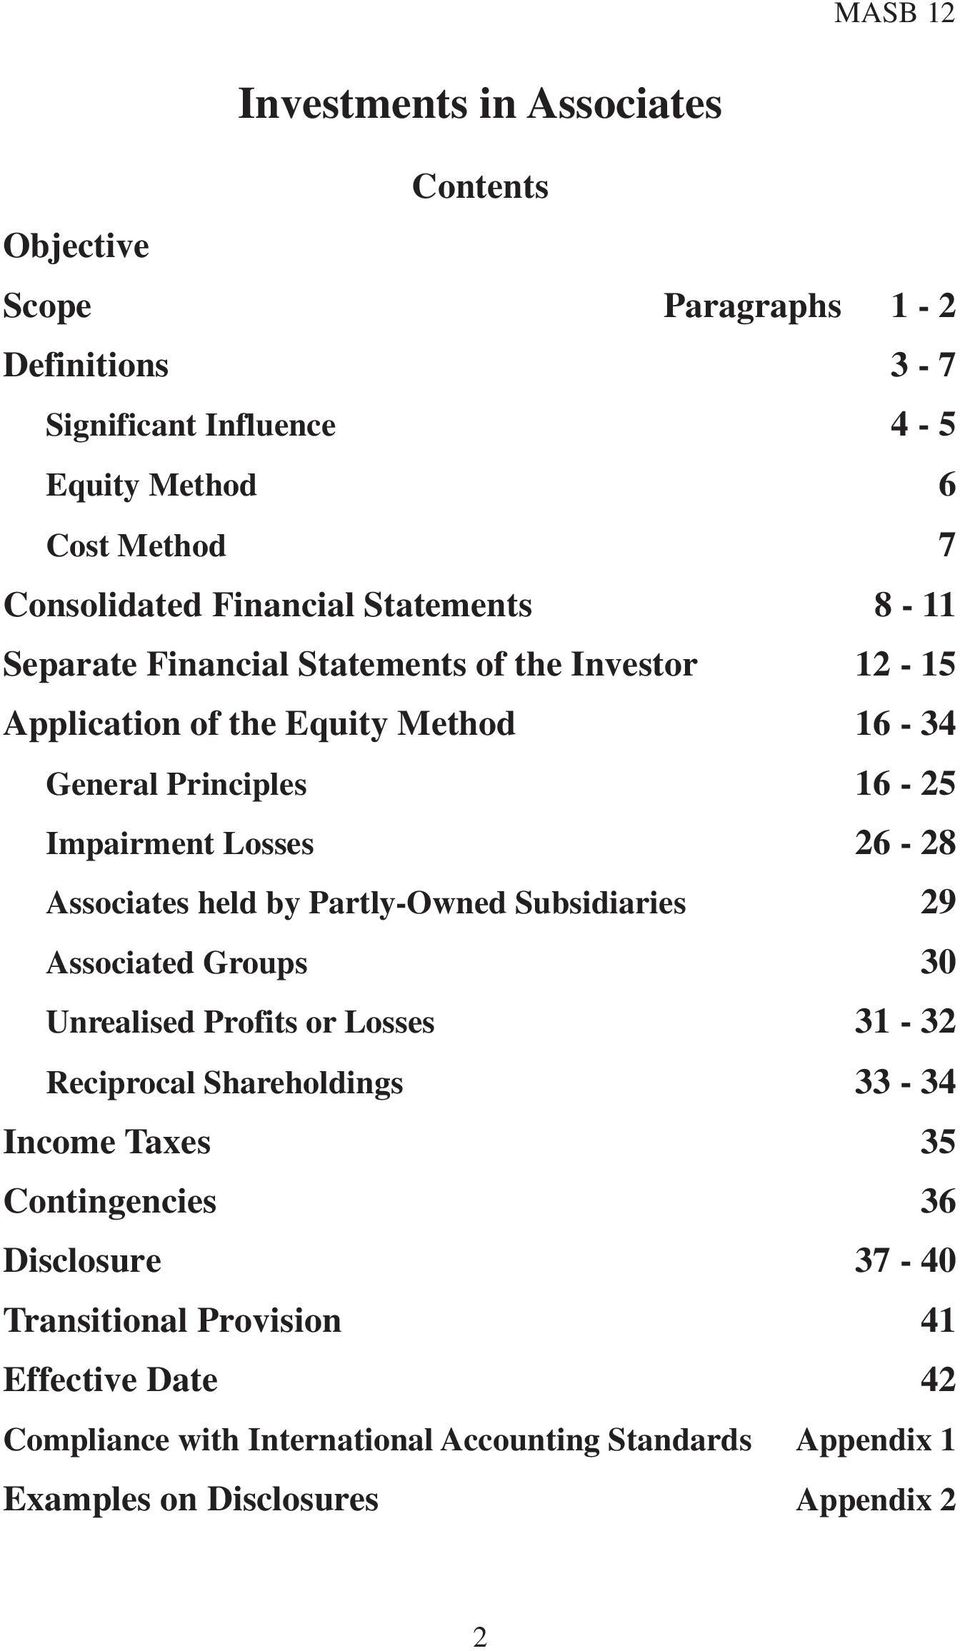 Associates held by Partly-Owned Subsidiaries 29 Associated Groups 30 Unrealised Profits or Losses 31-32 Reciprocal Shareholdings 33-34 Income Taxes 35